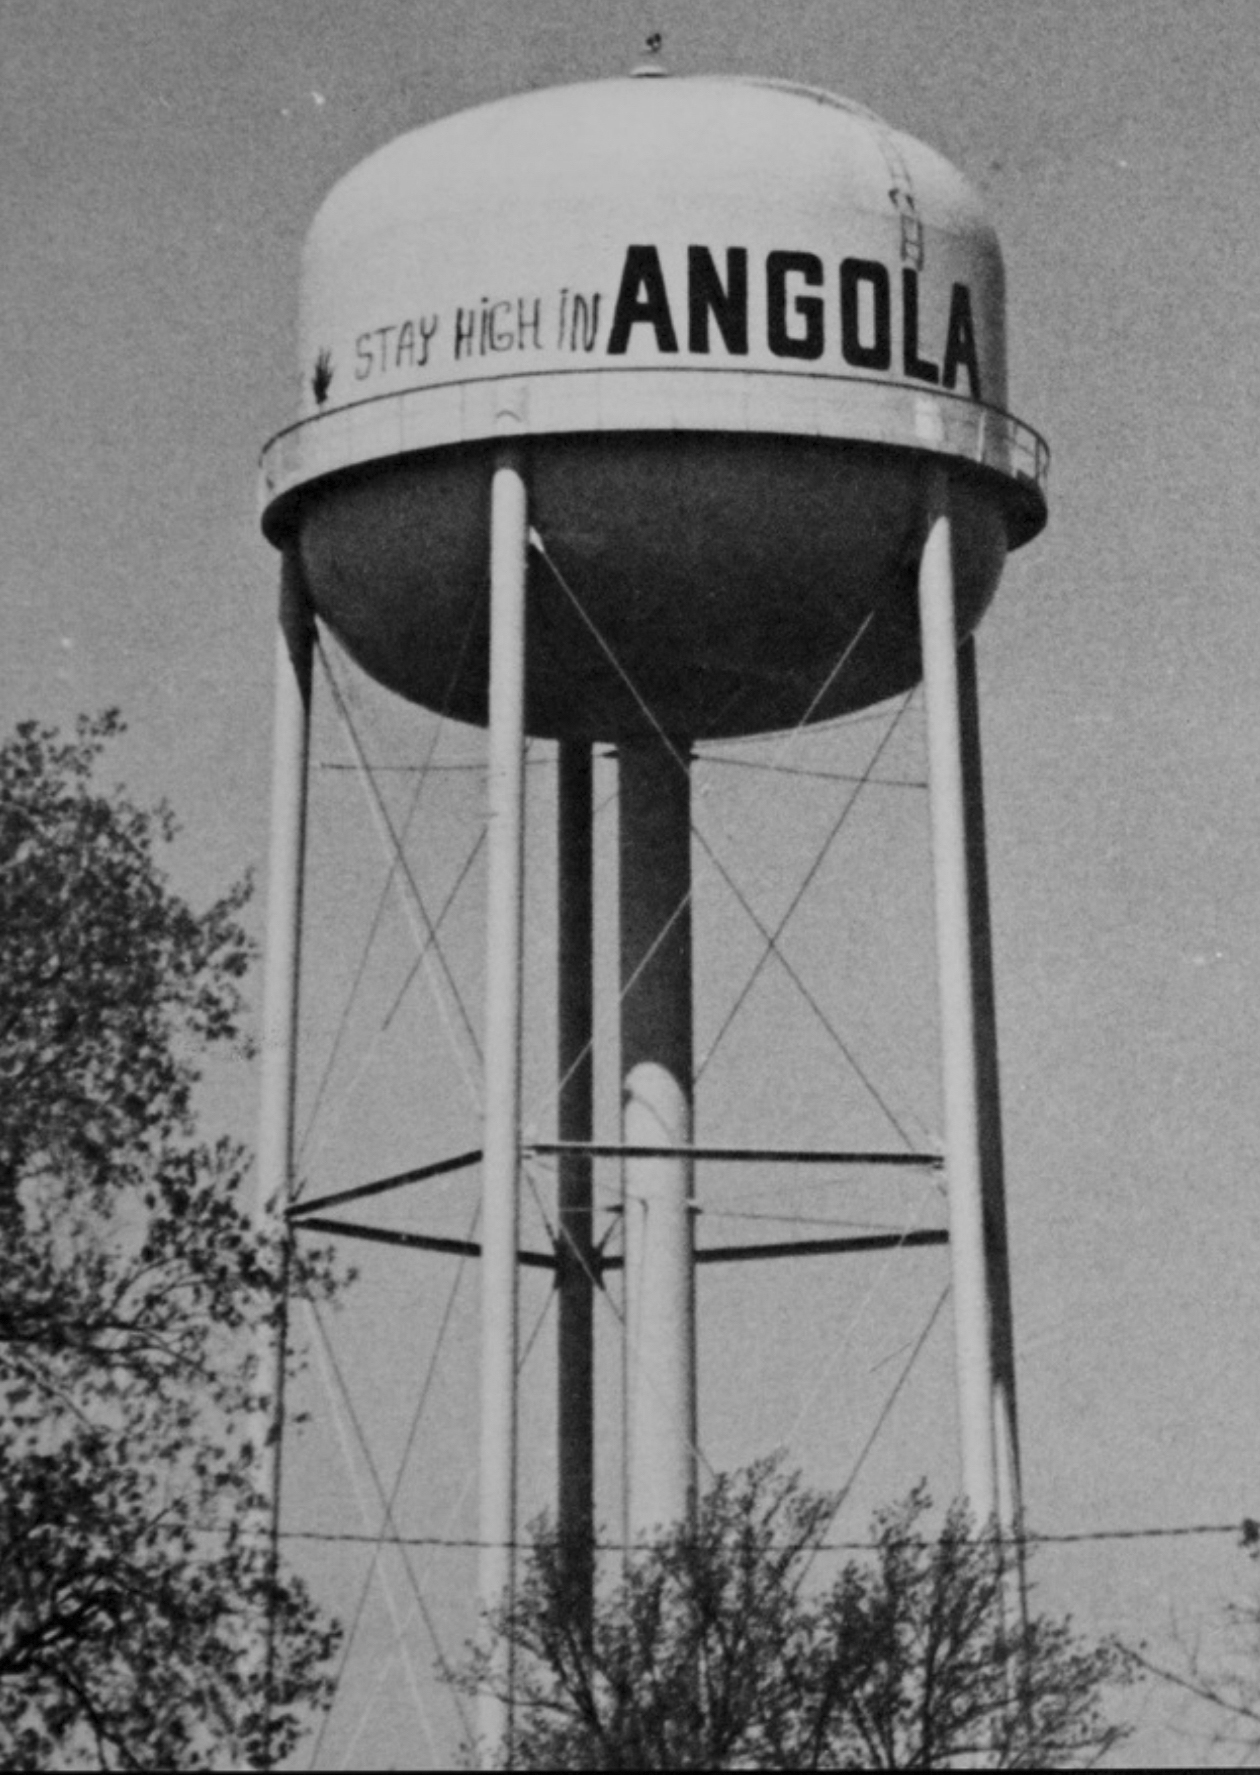 Stay High In Angola